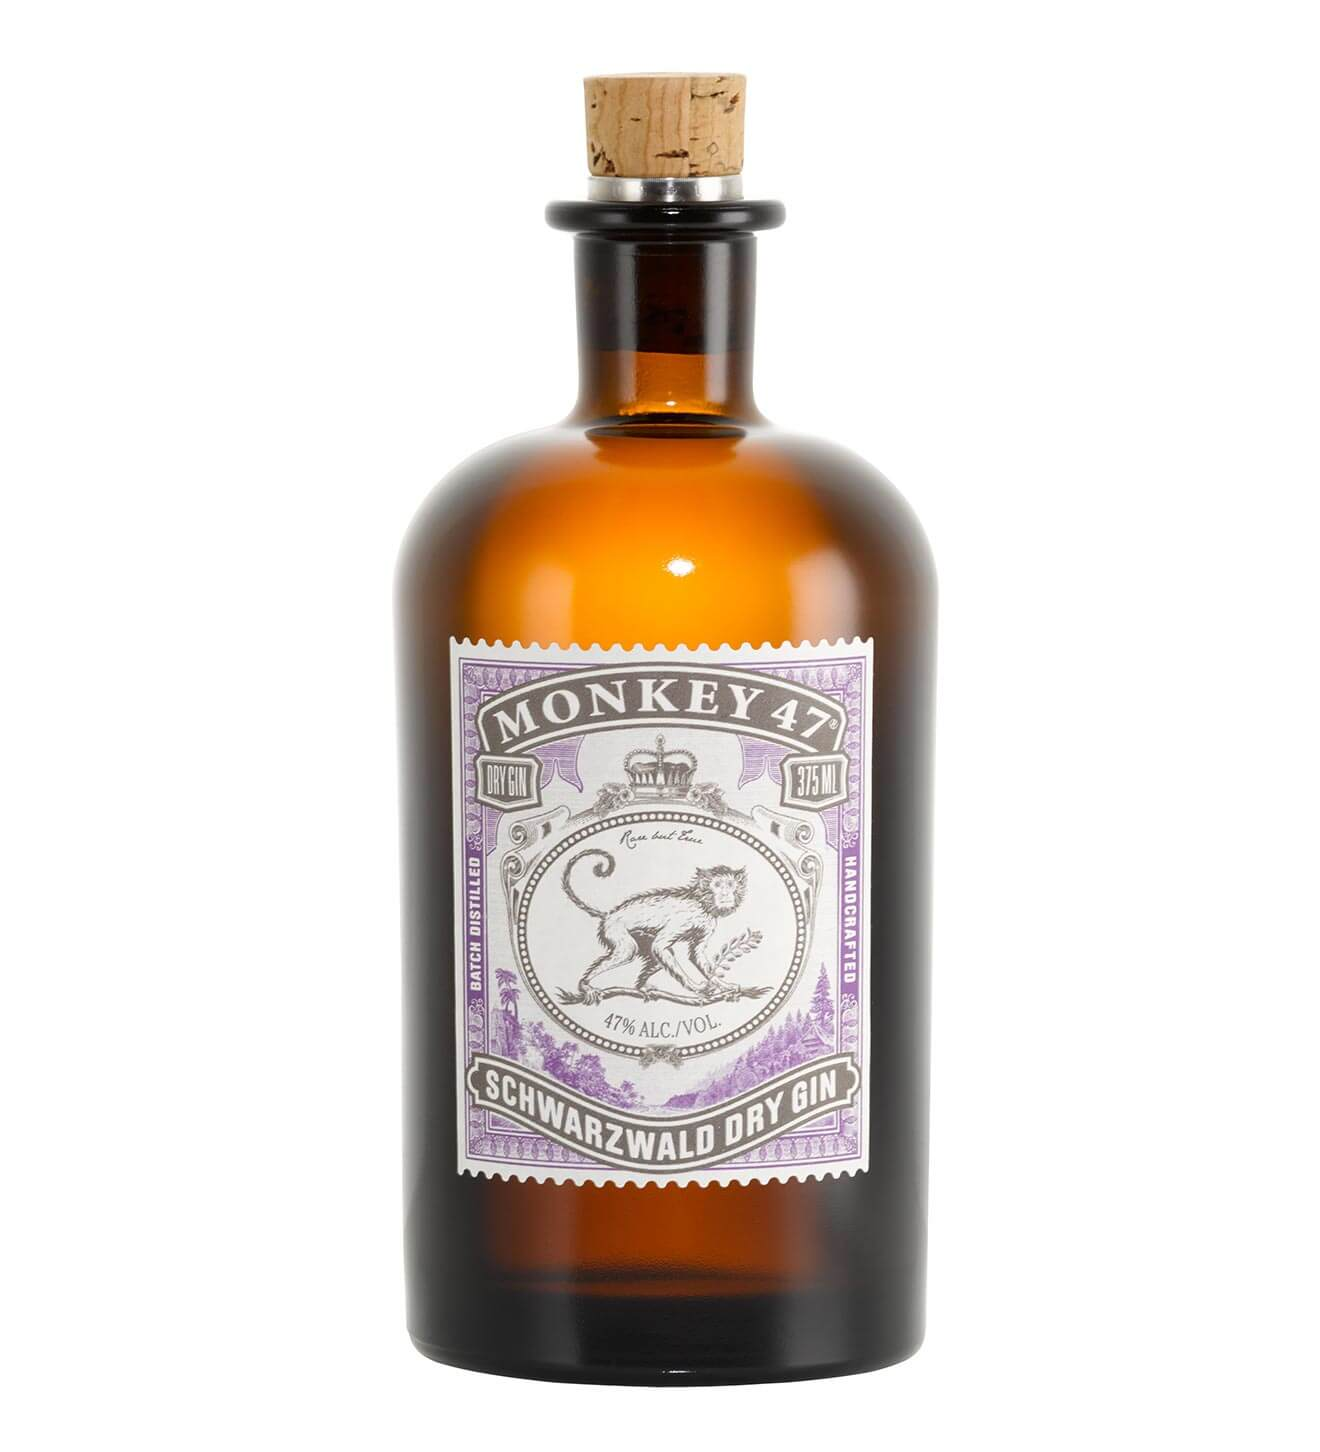 Monkey 47 Schwarzwald Dry Gin, bottle on white